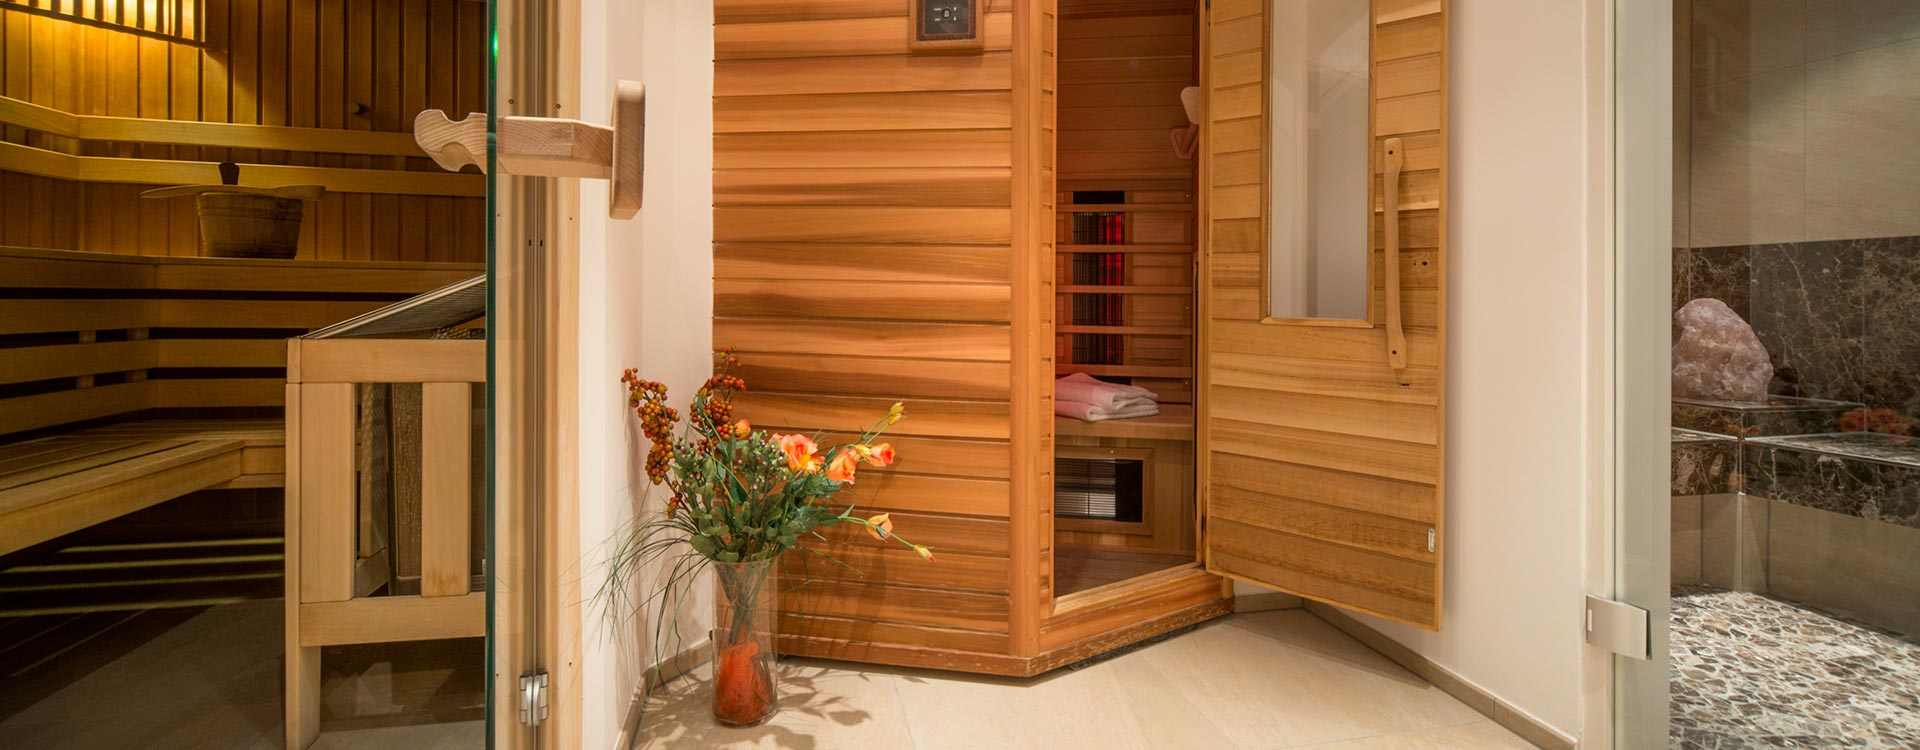 Finnish sauna - Infrared sauna - steam Sauna